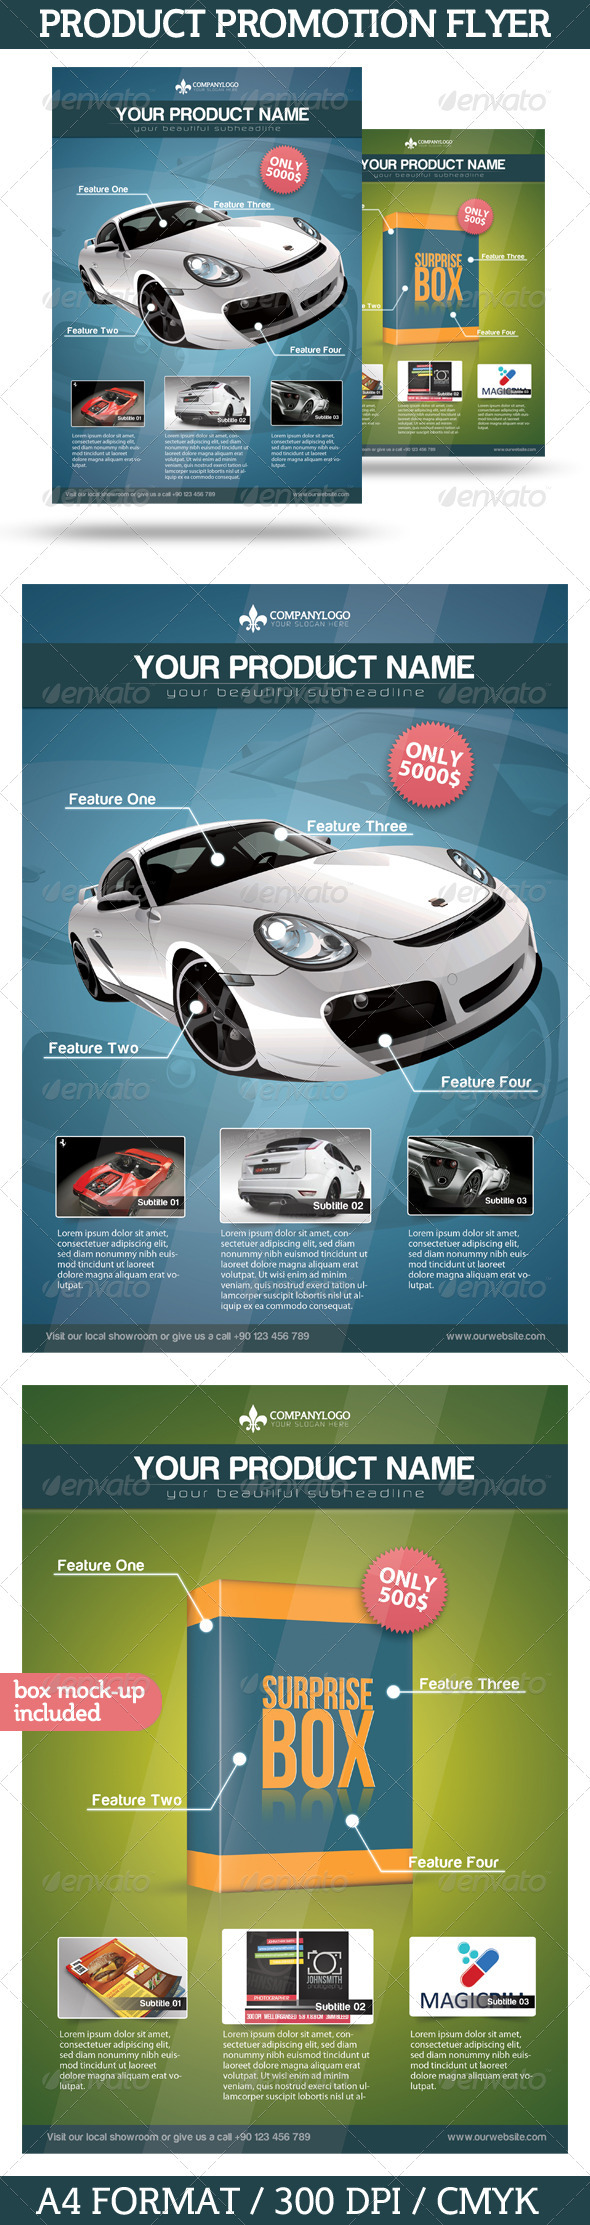 GraphicRiver Product Promotion Flyer 3440290